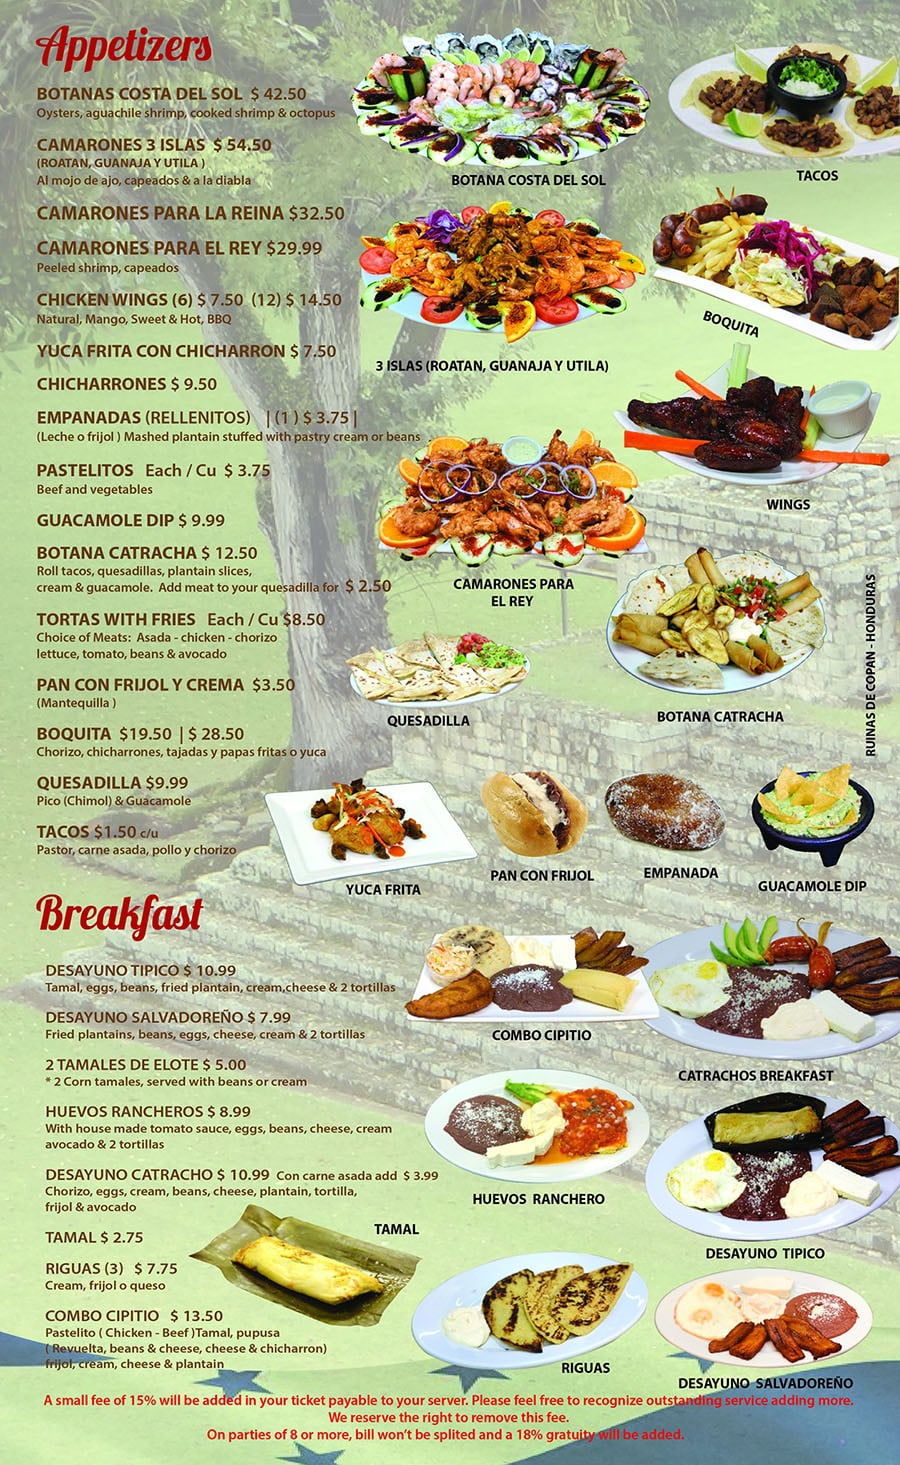 Catrachos Restaurant menu - appetizers, breakfast